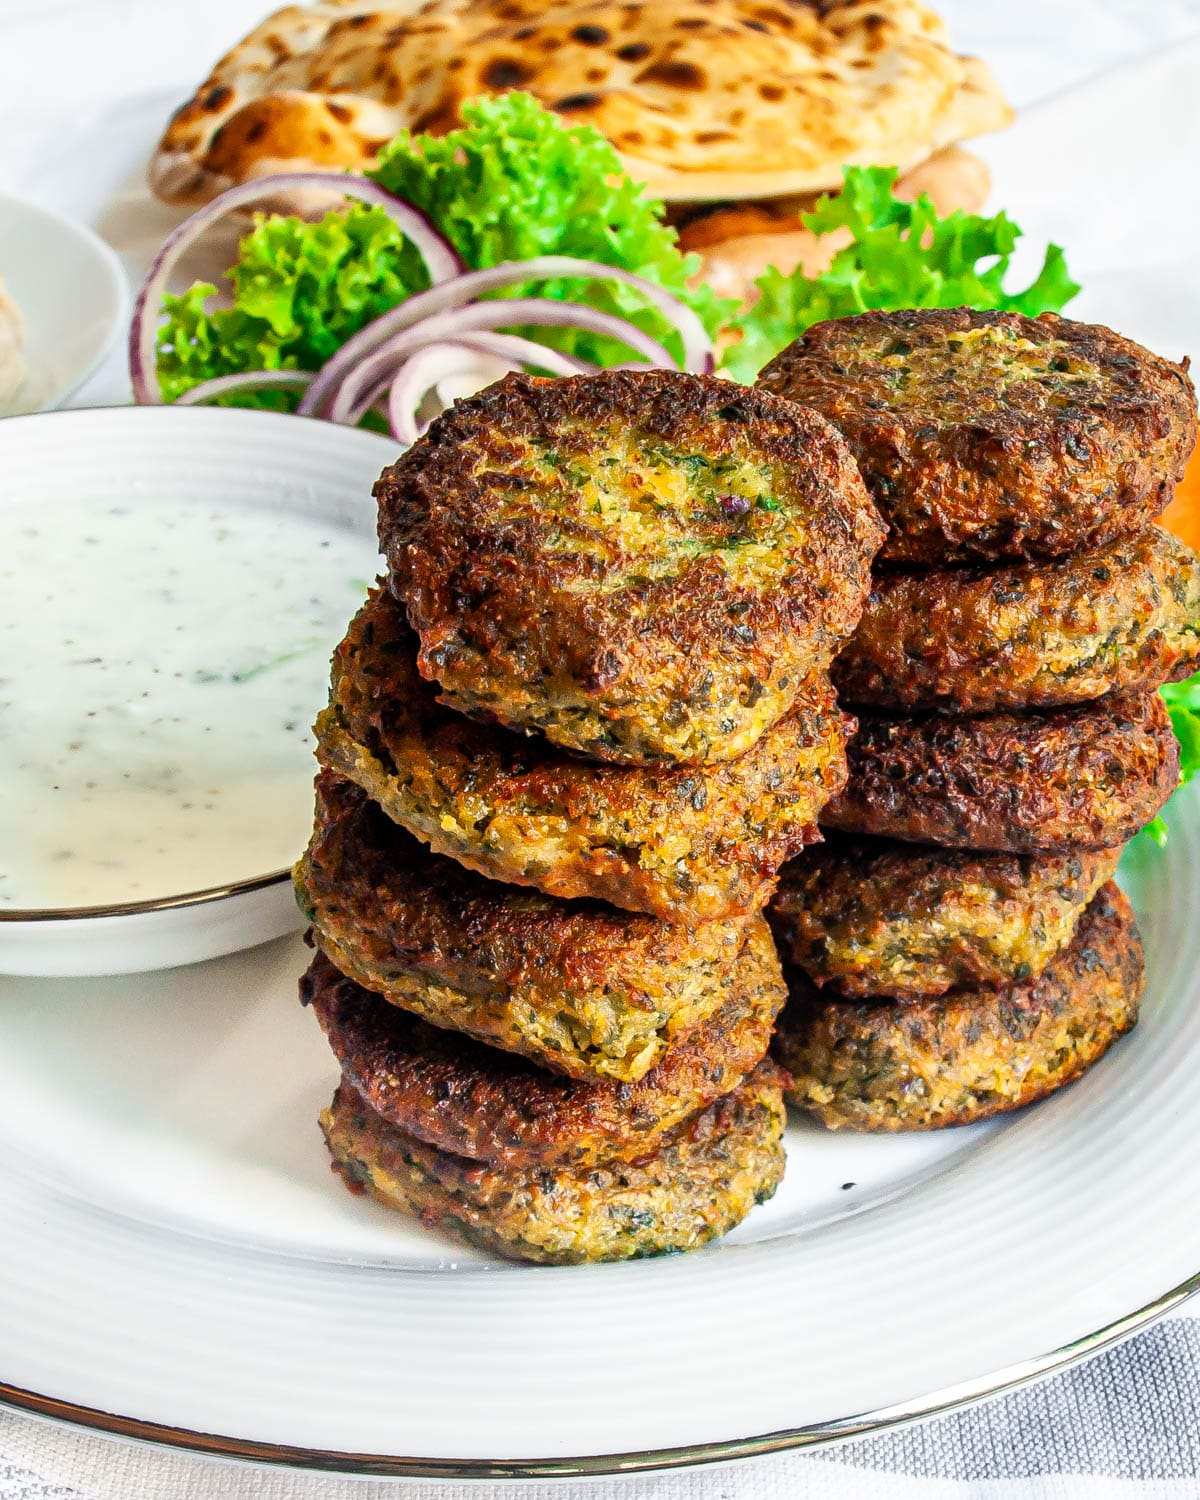 two stacks of falafel with tzatziki sauce in the background